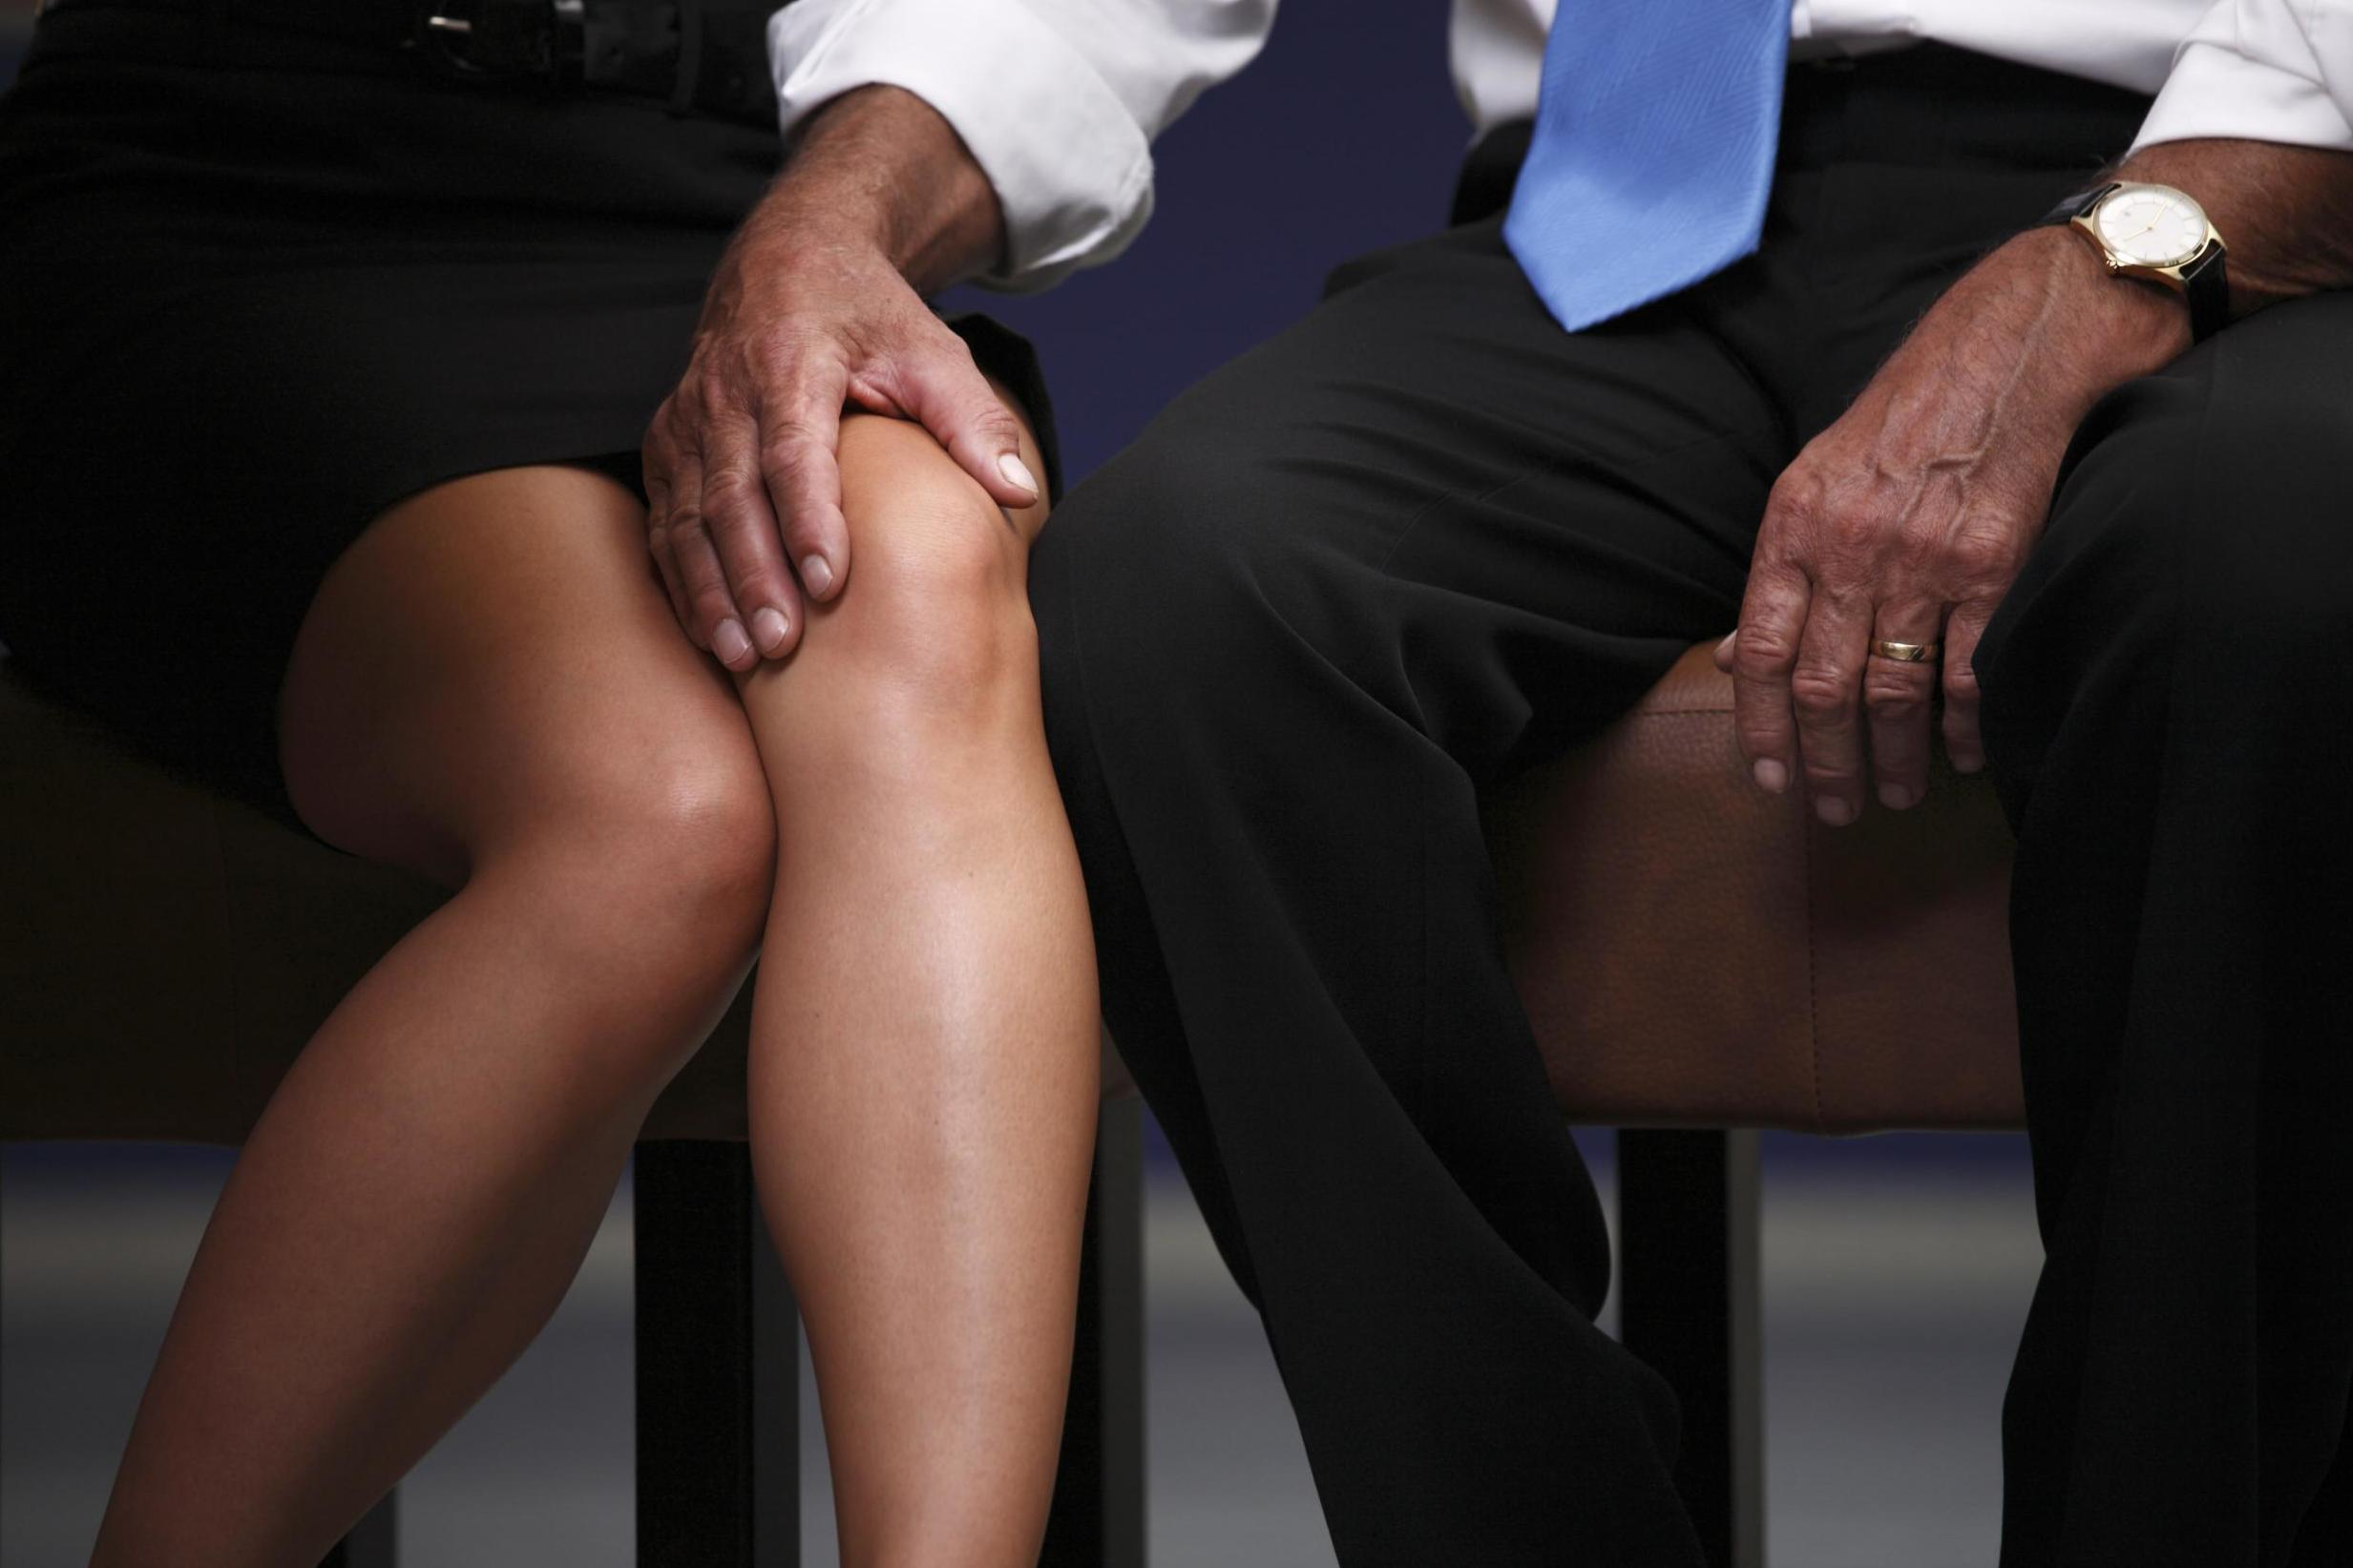 Male unemployment leads to more sex discrimination against women, shows study